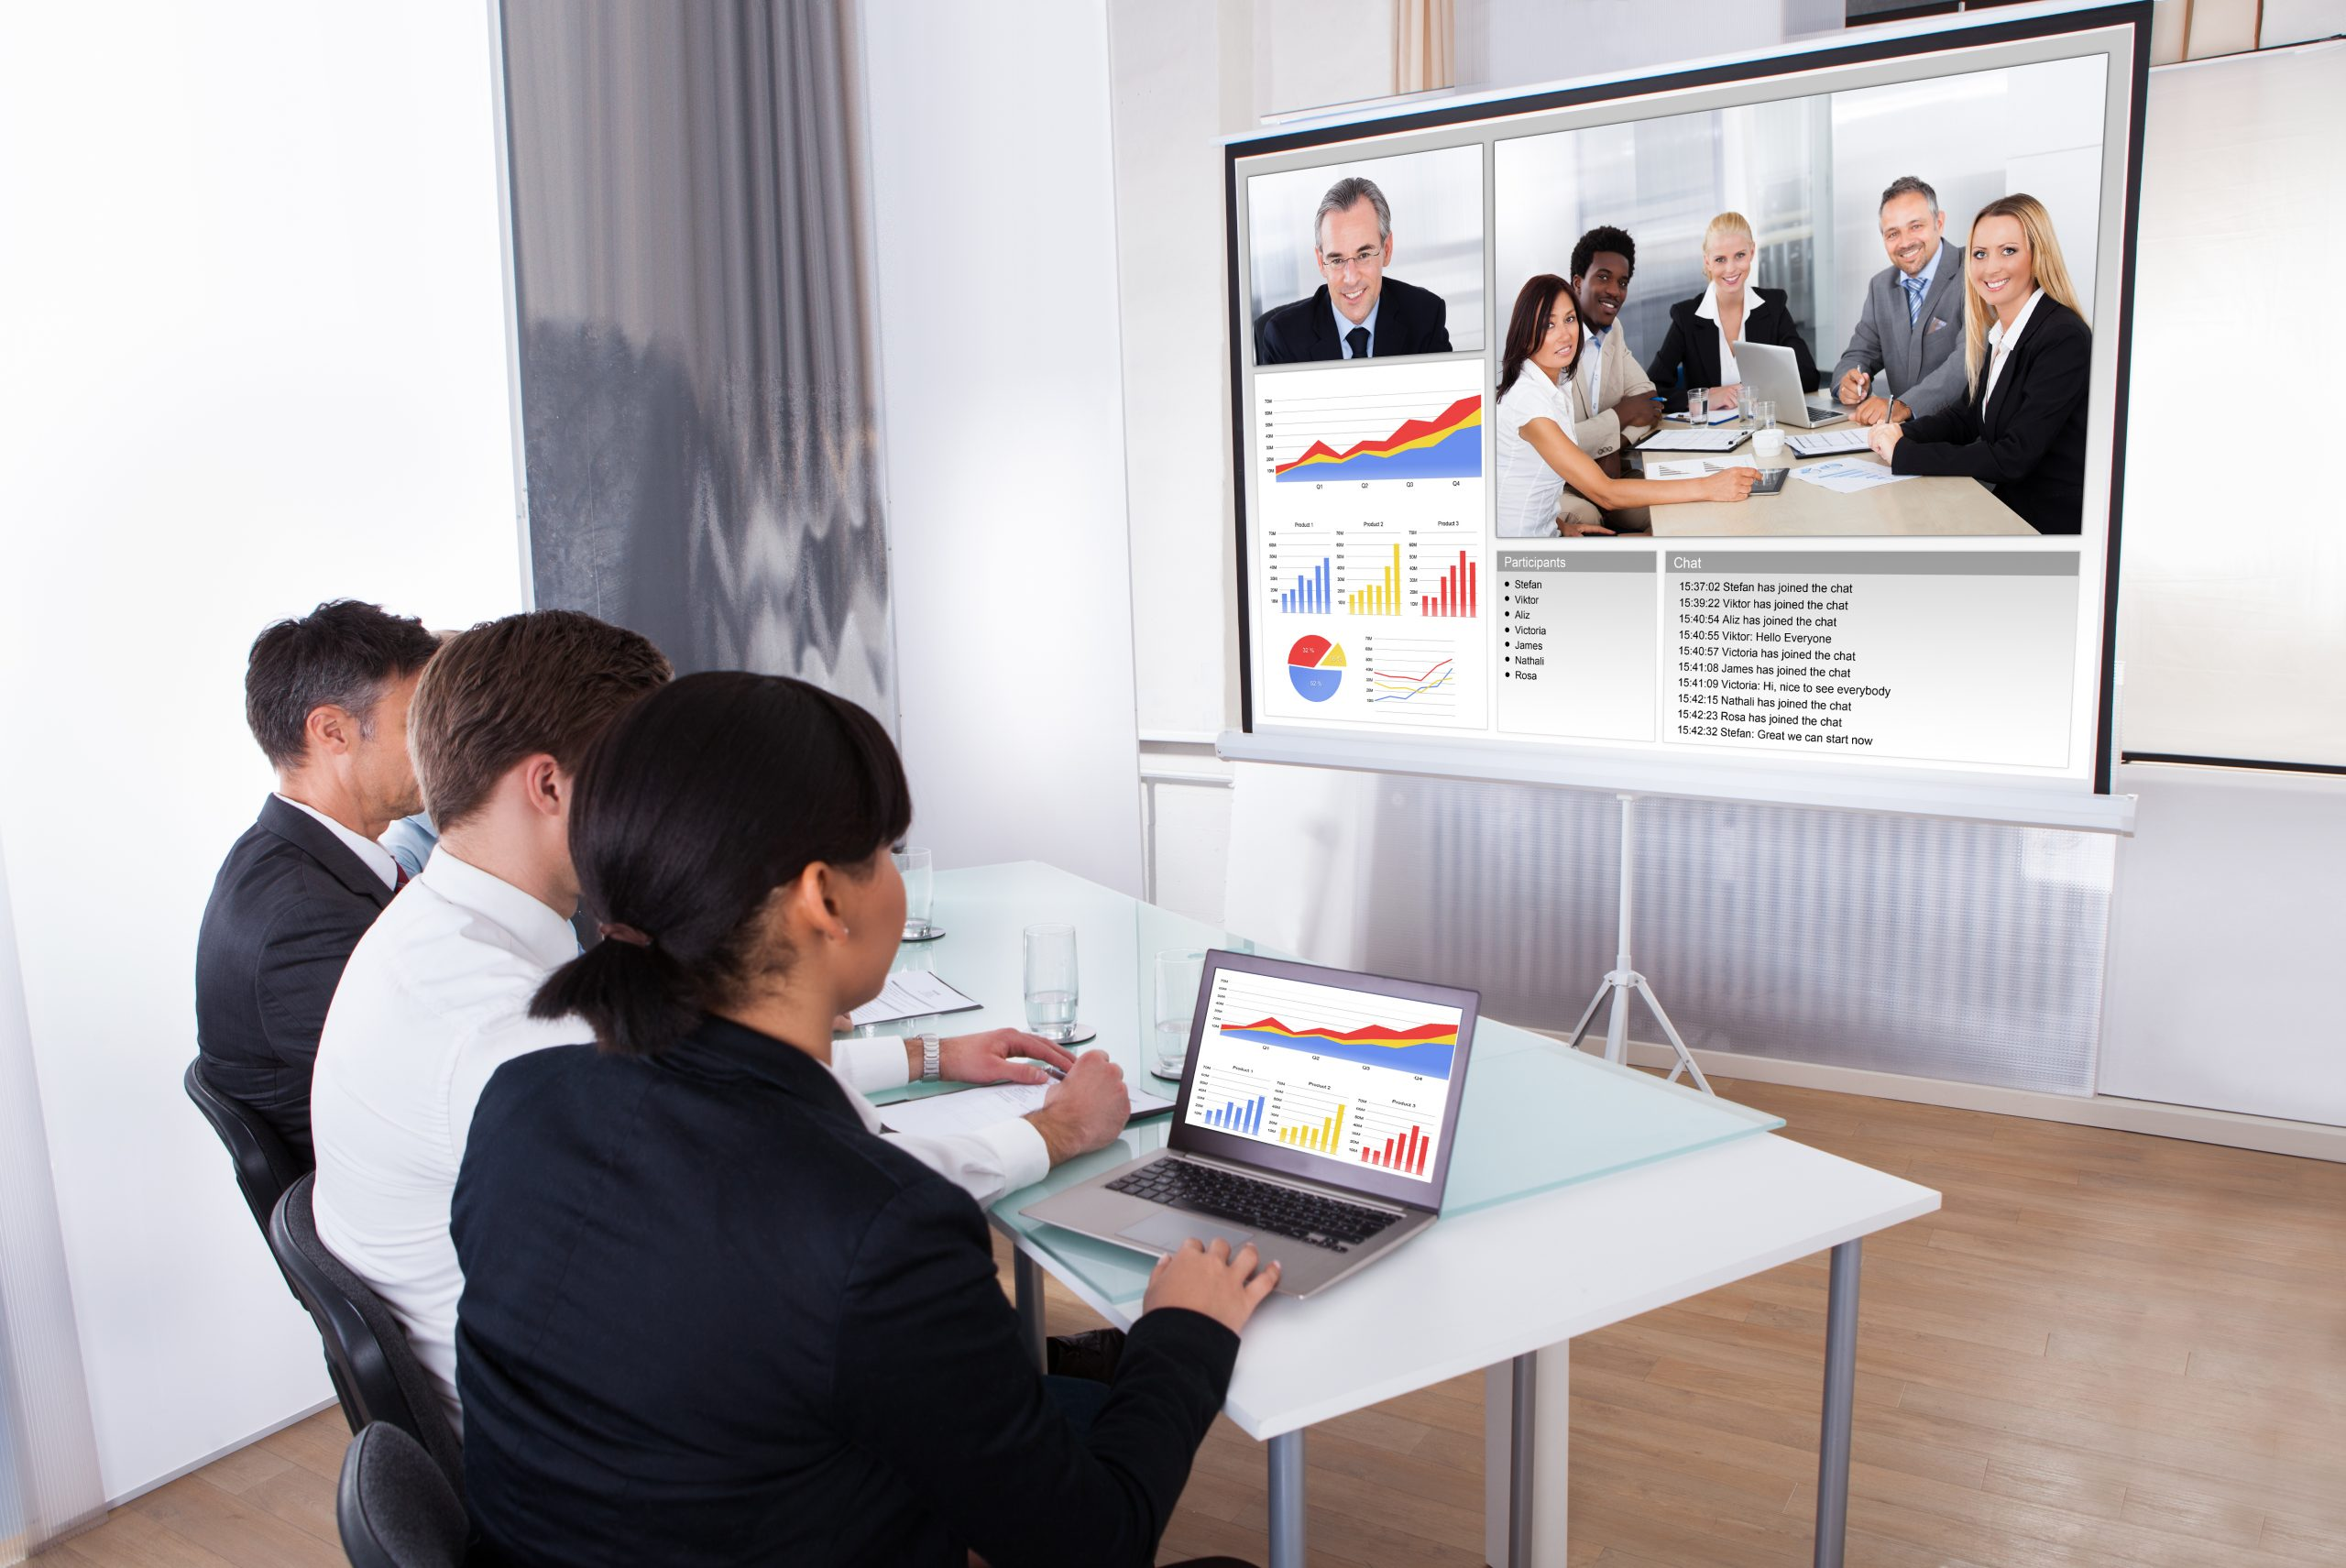 Business people in meeting | Axiom Communications